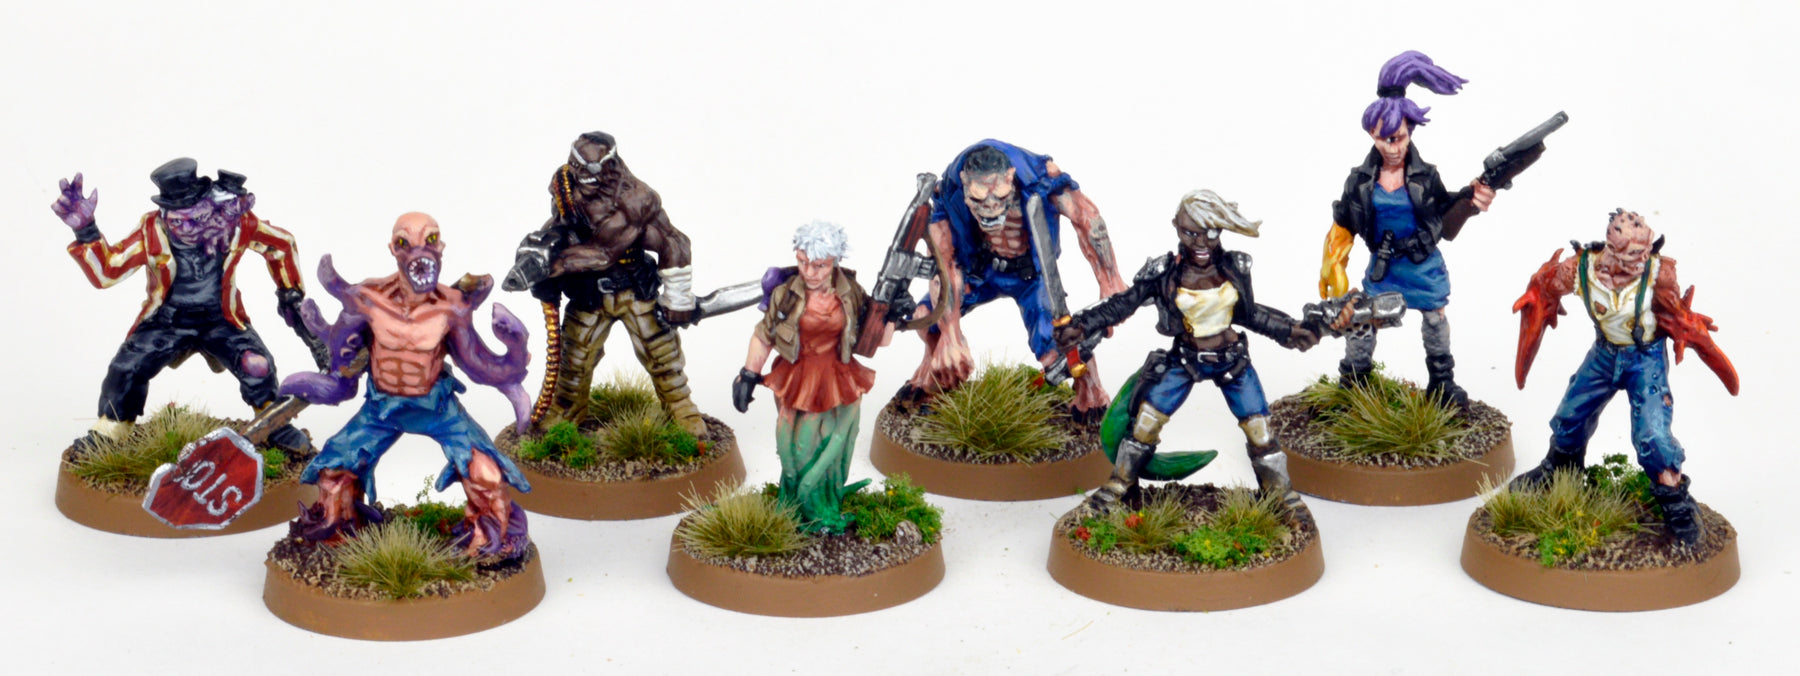 Downwinder Mutant Warband